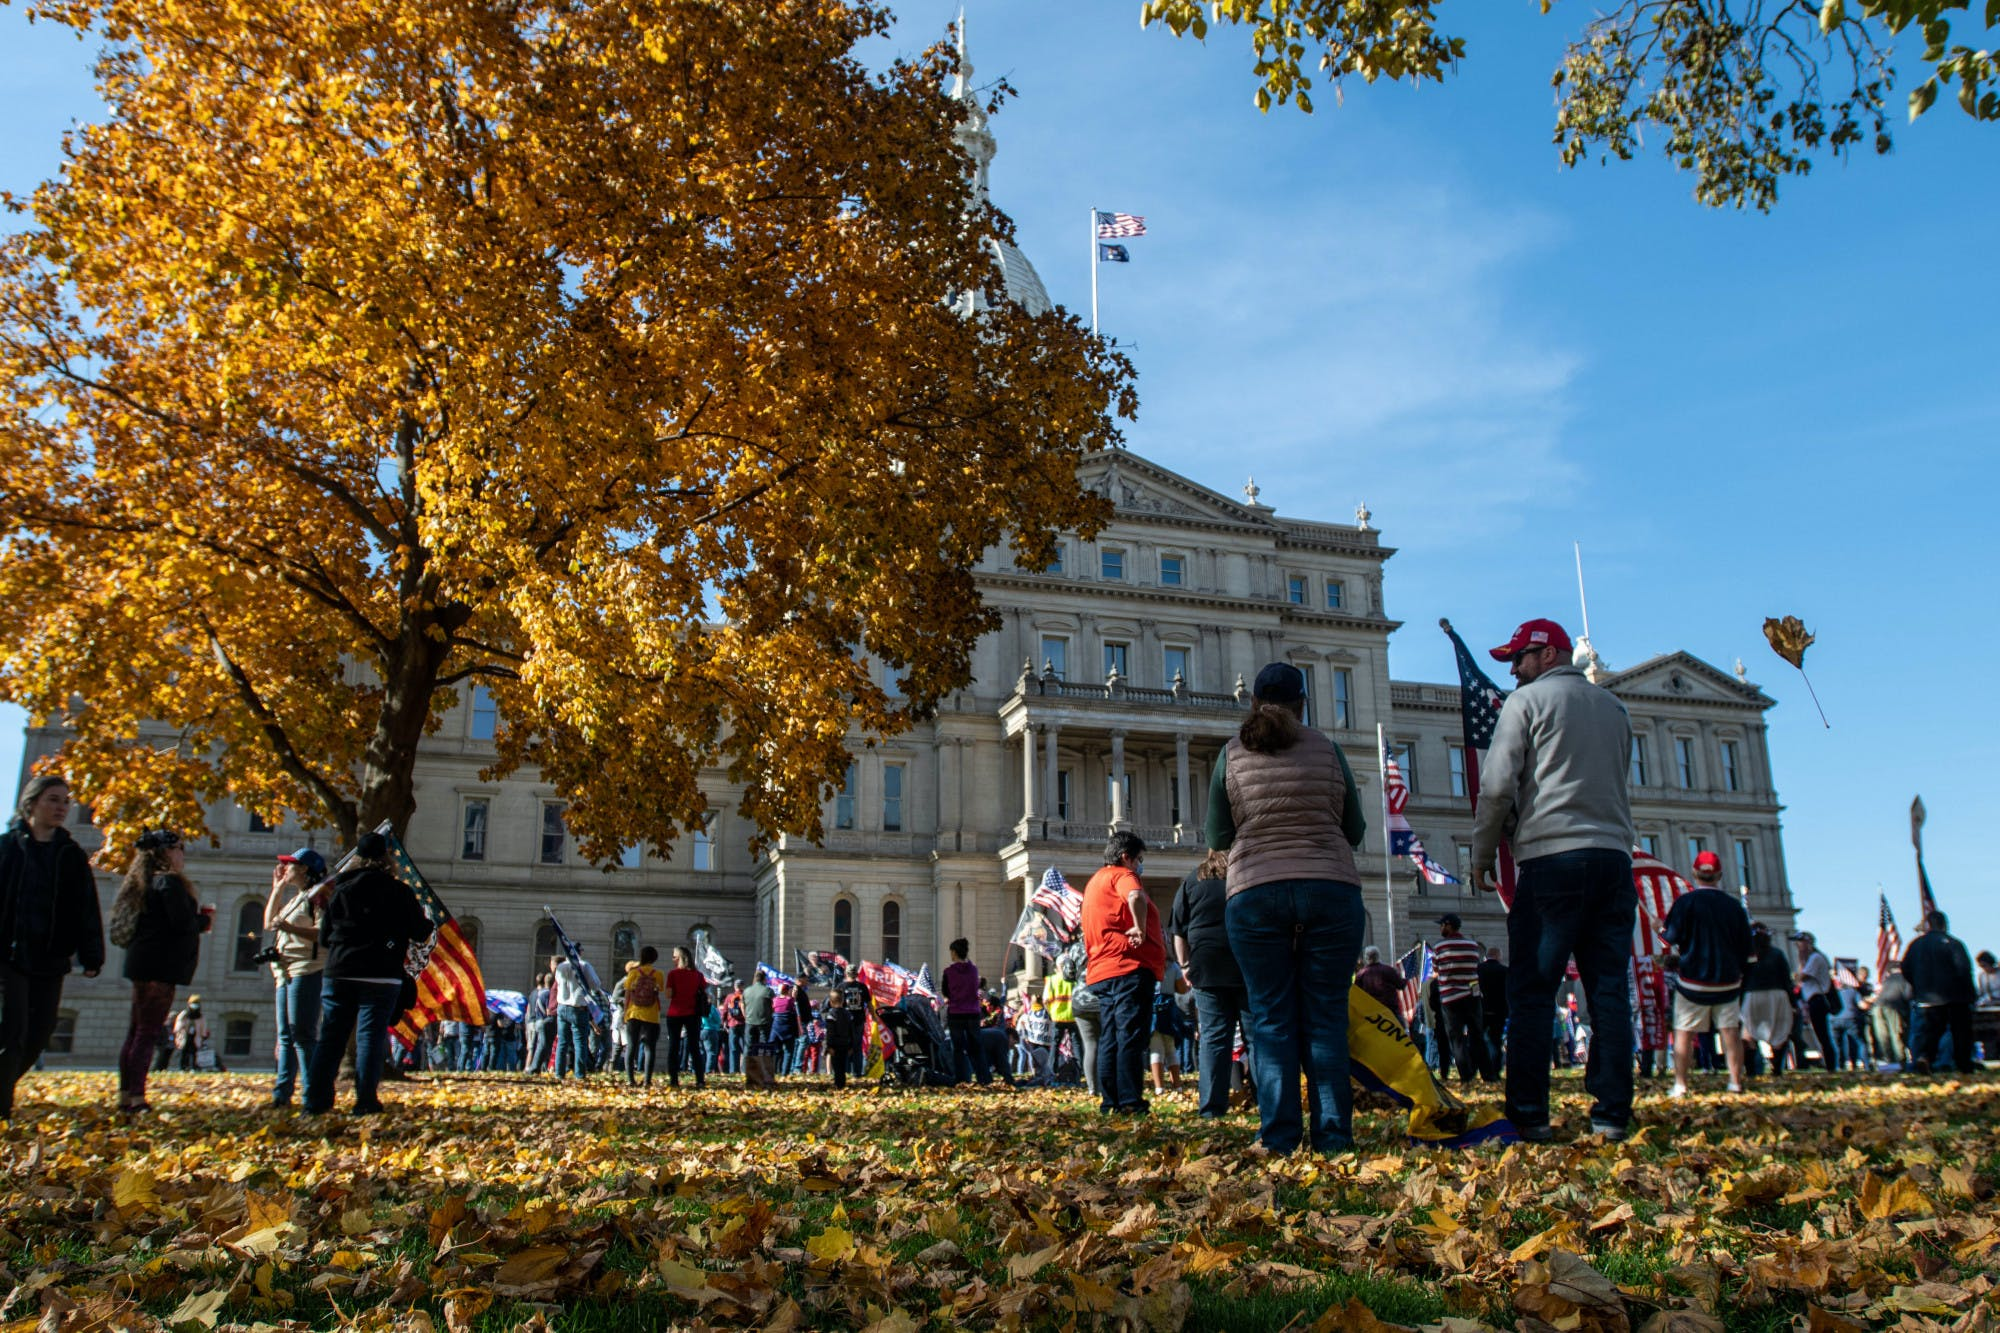 A crowd of people gather at the Michigan State Capitol.